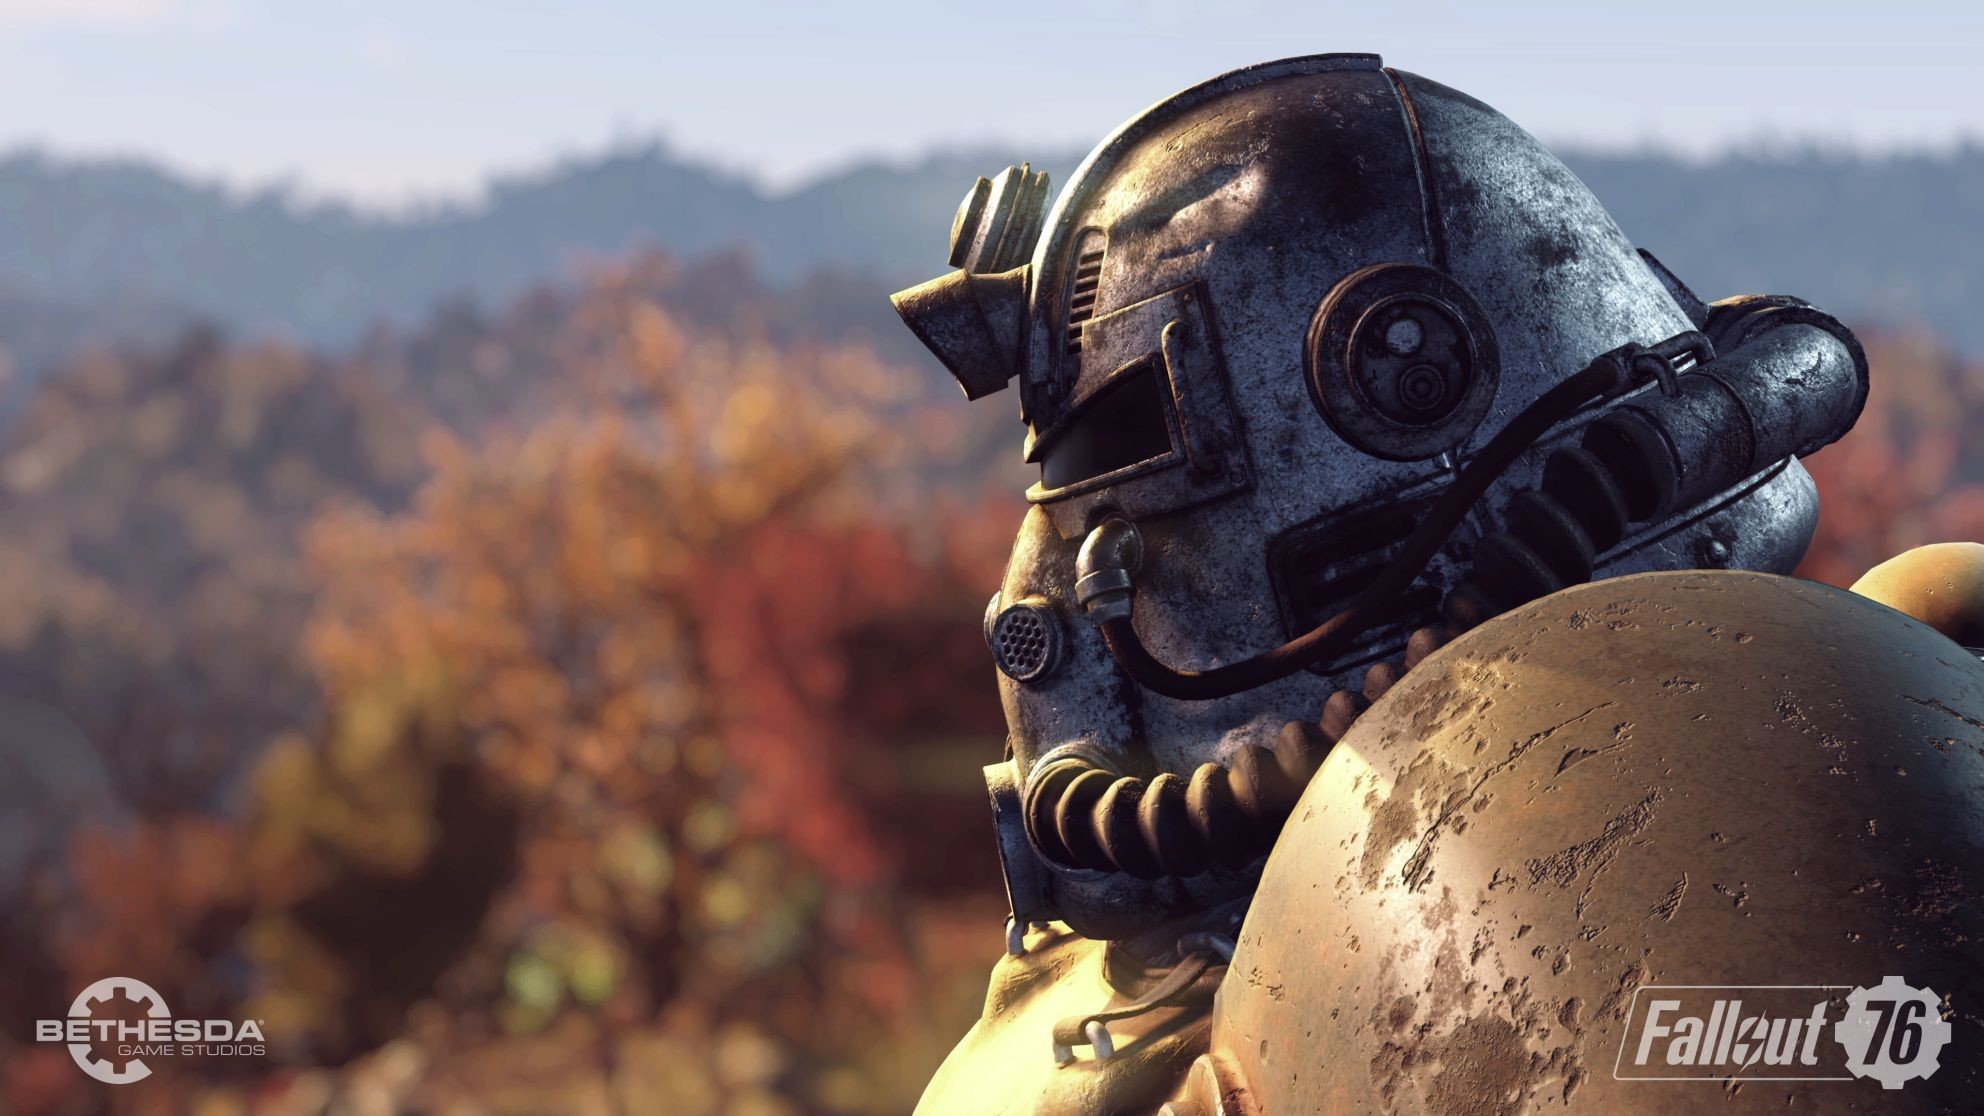 Fallout 76 game client gets removed if you click any button in launcher